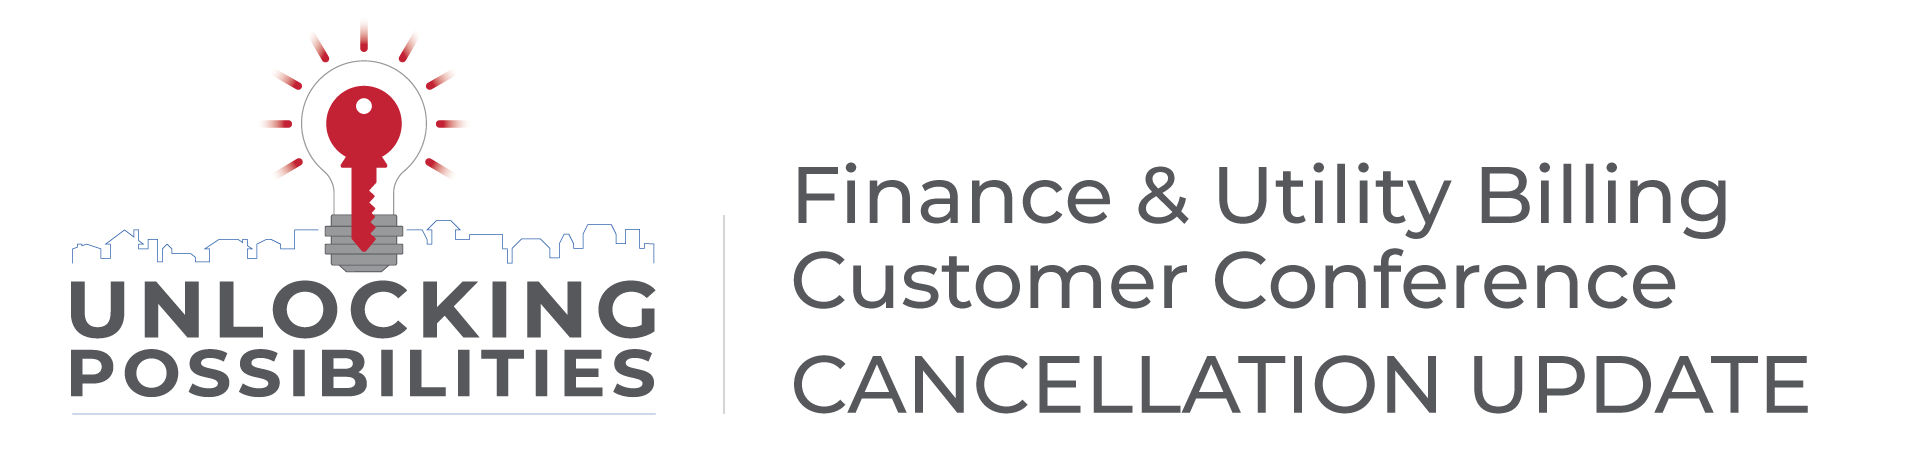 Finance & UB Conference Cancellation Update